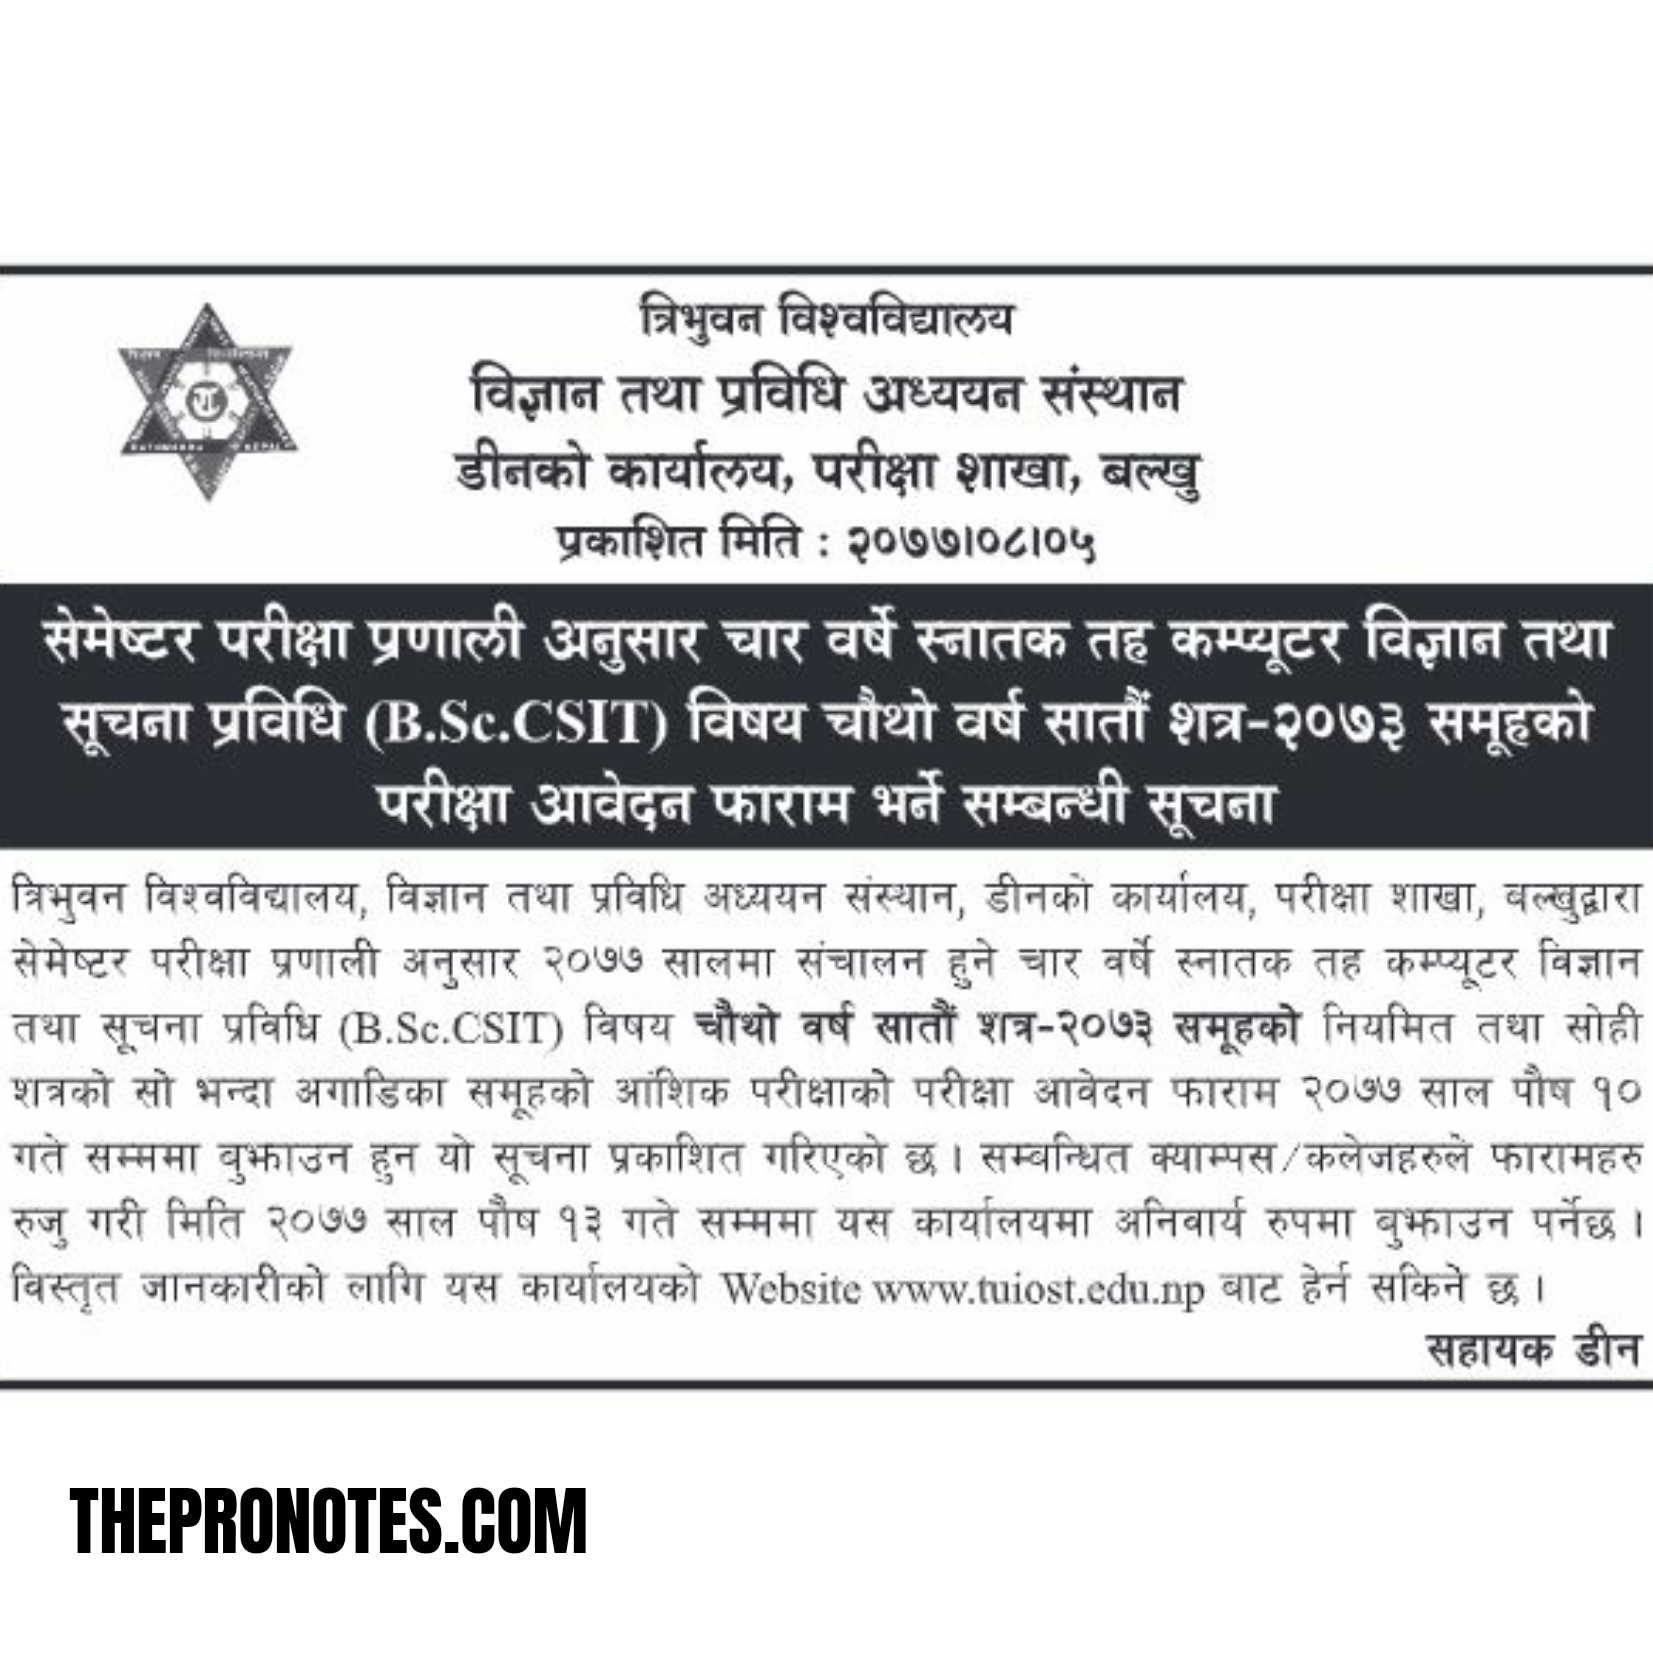 B.Sc CSIT Seventh Semester Examination Form Notice: TU